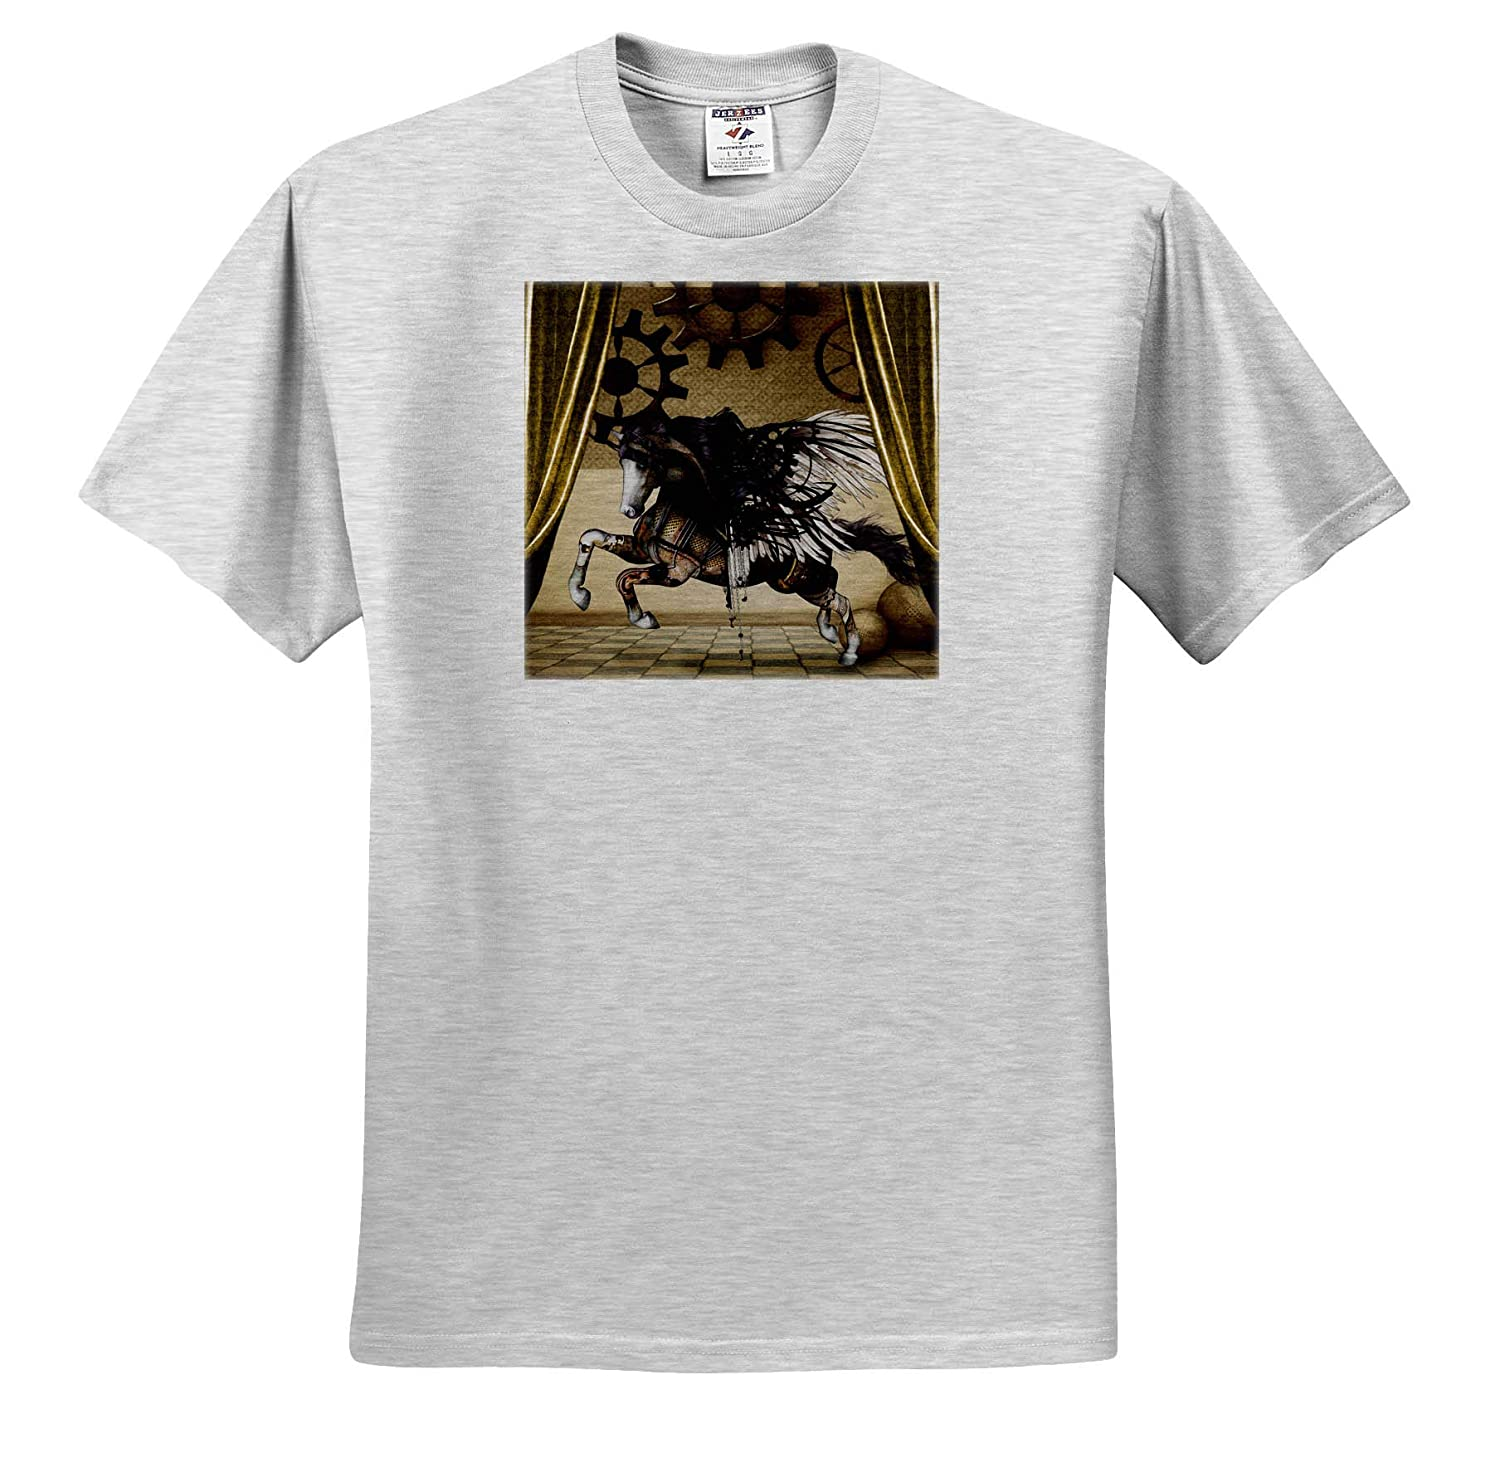 Adult T-Shirt XL ts/_310281 3dRose Heike K/öhnen Design Steampunk Wonderful Steampunk Horse with Wings